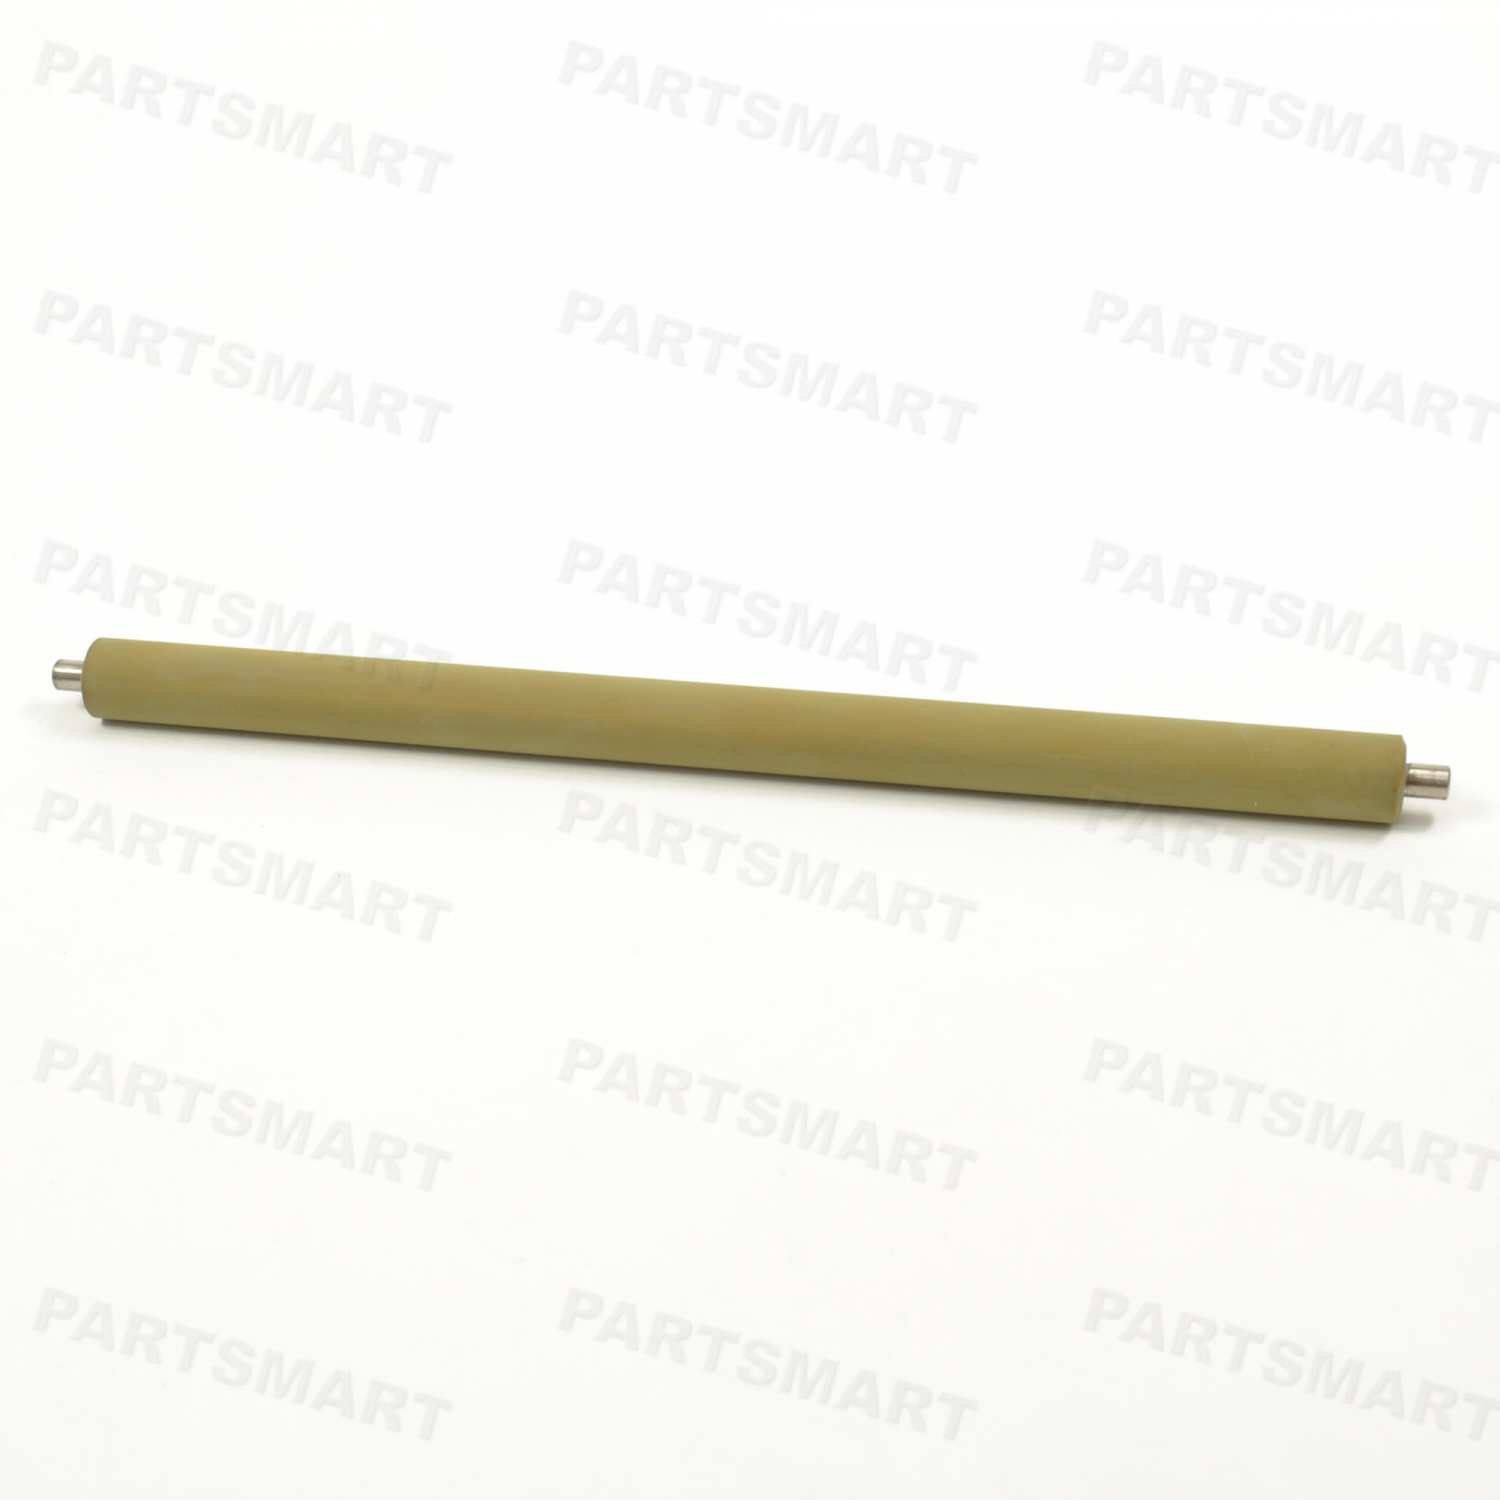 56P0640 Charge Roller (PCR) for Lexmark T420, T430